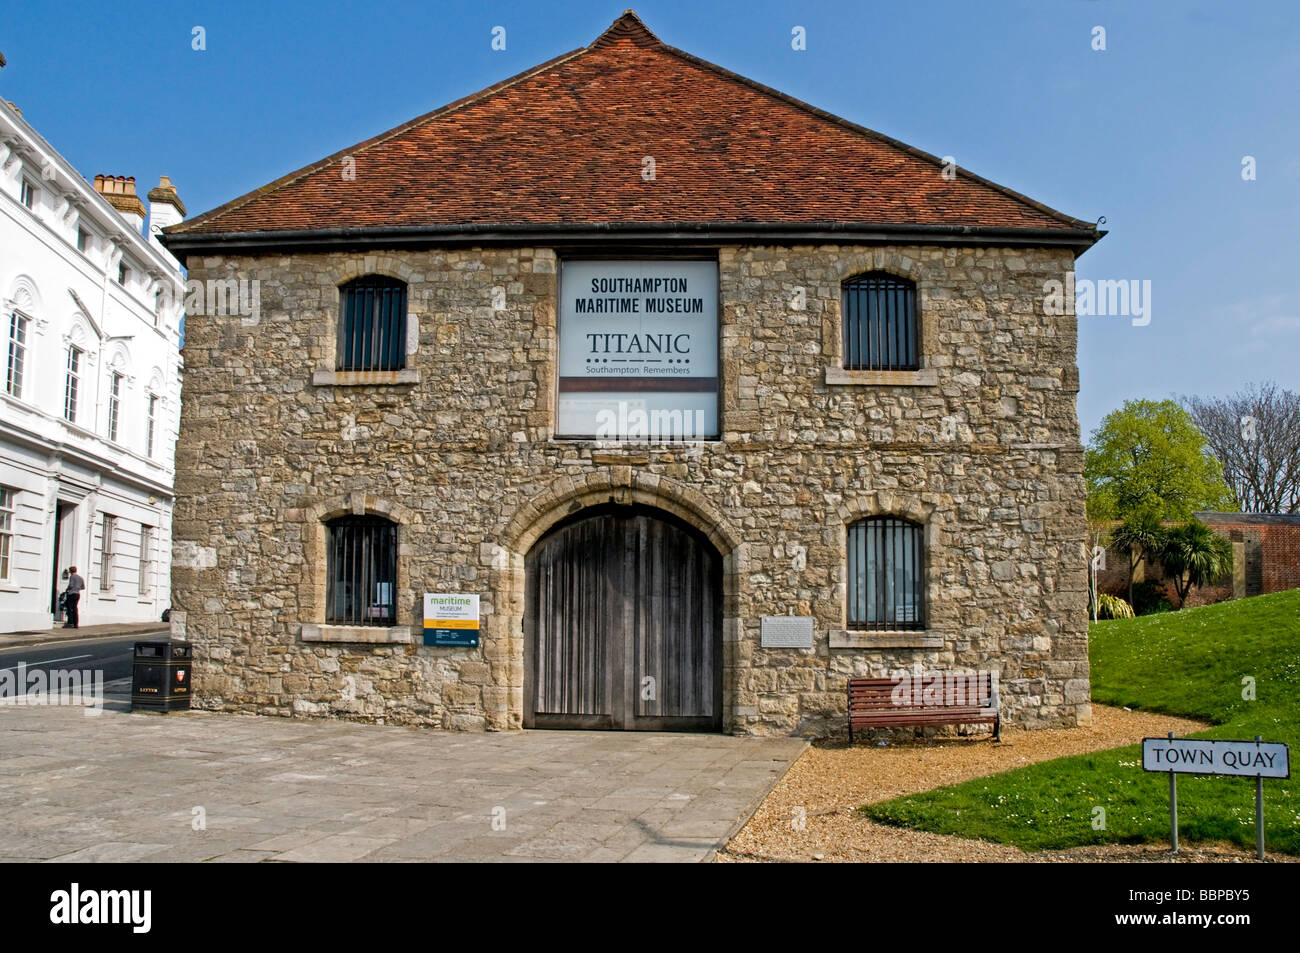 The Maritime Museum home to the Titanic Exhibition housed in a medieval wool warehouse, Southampton - Stock Photo